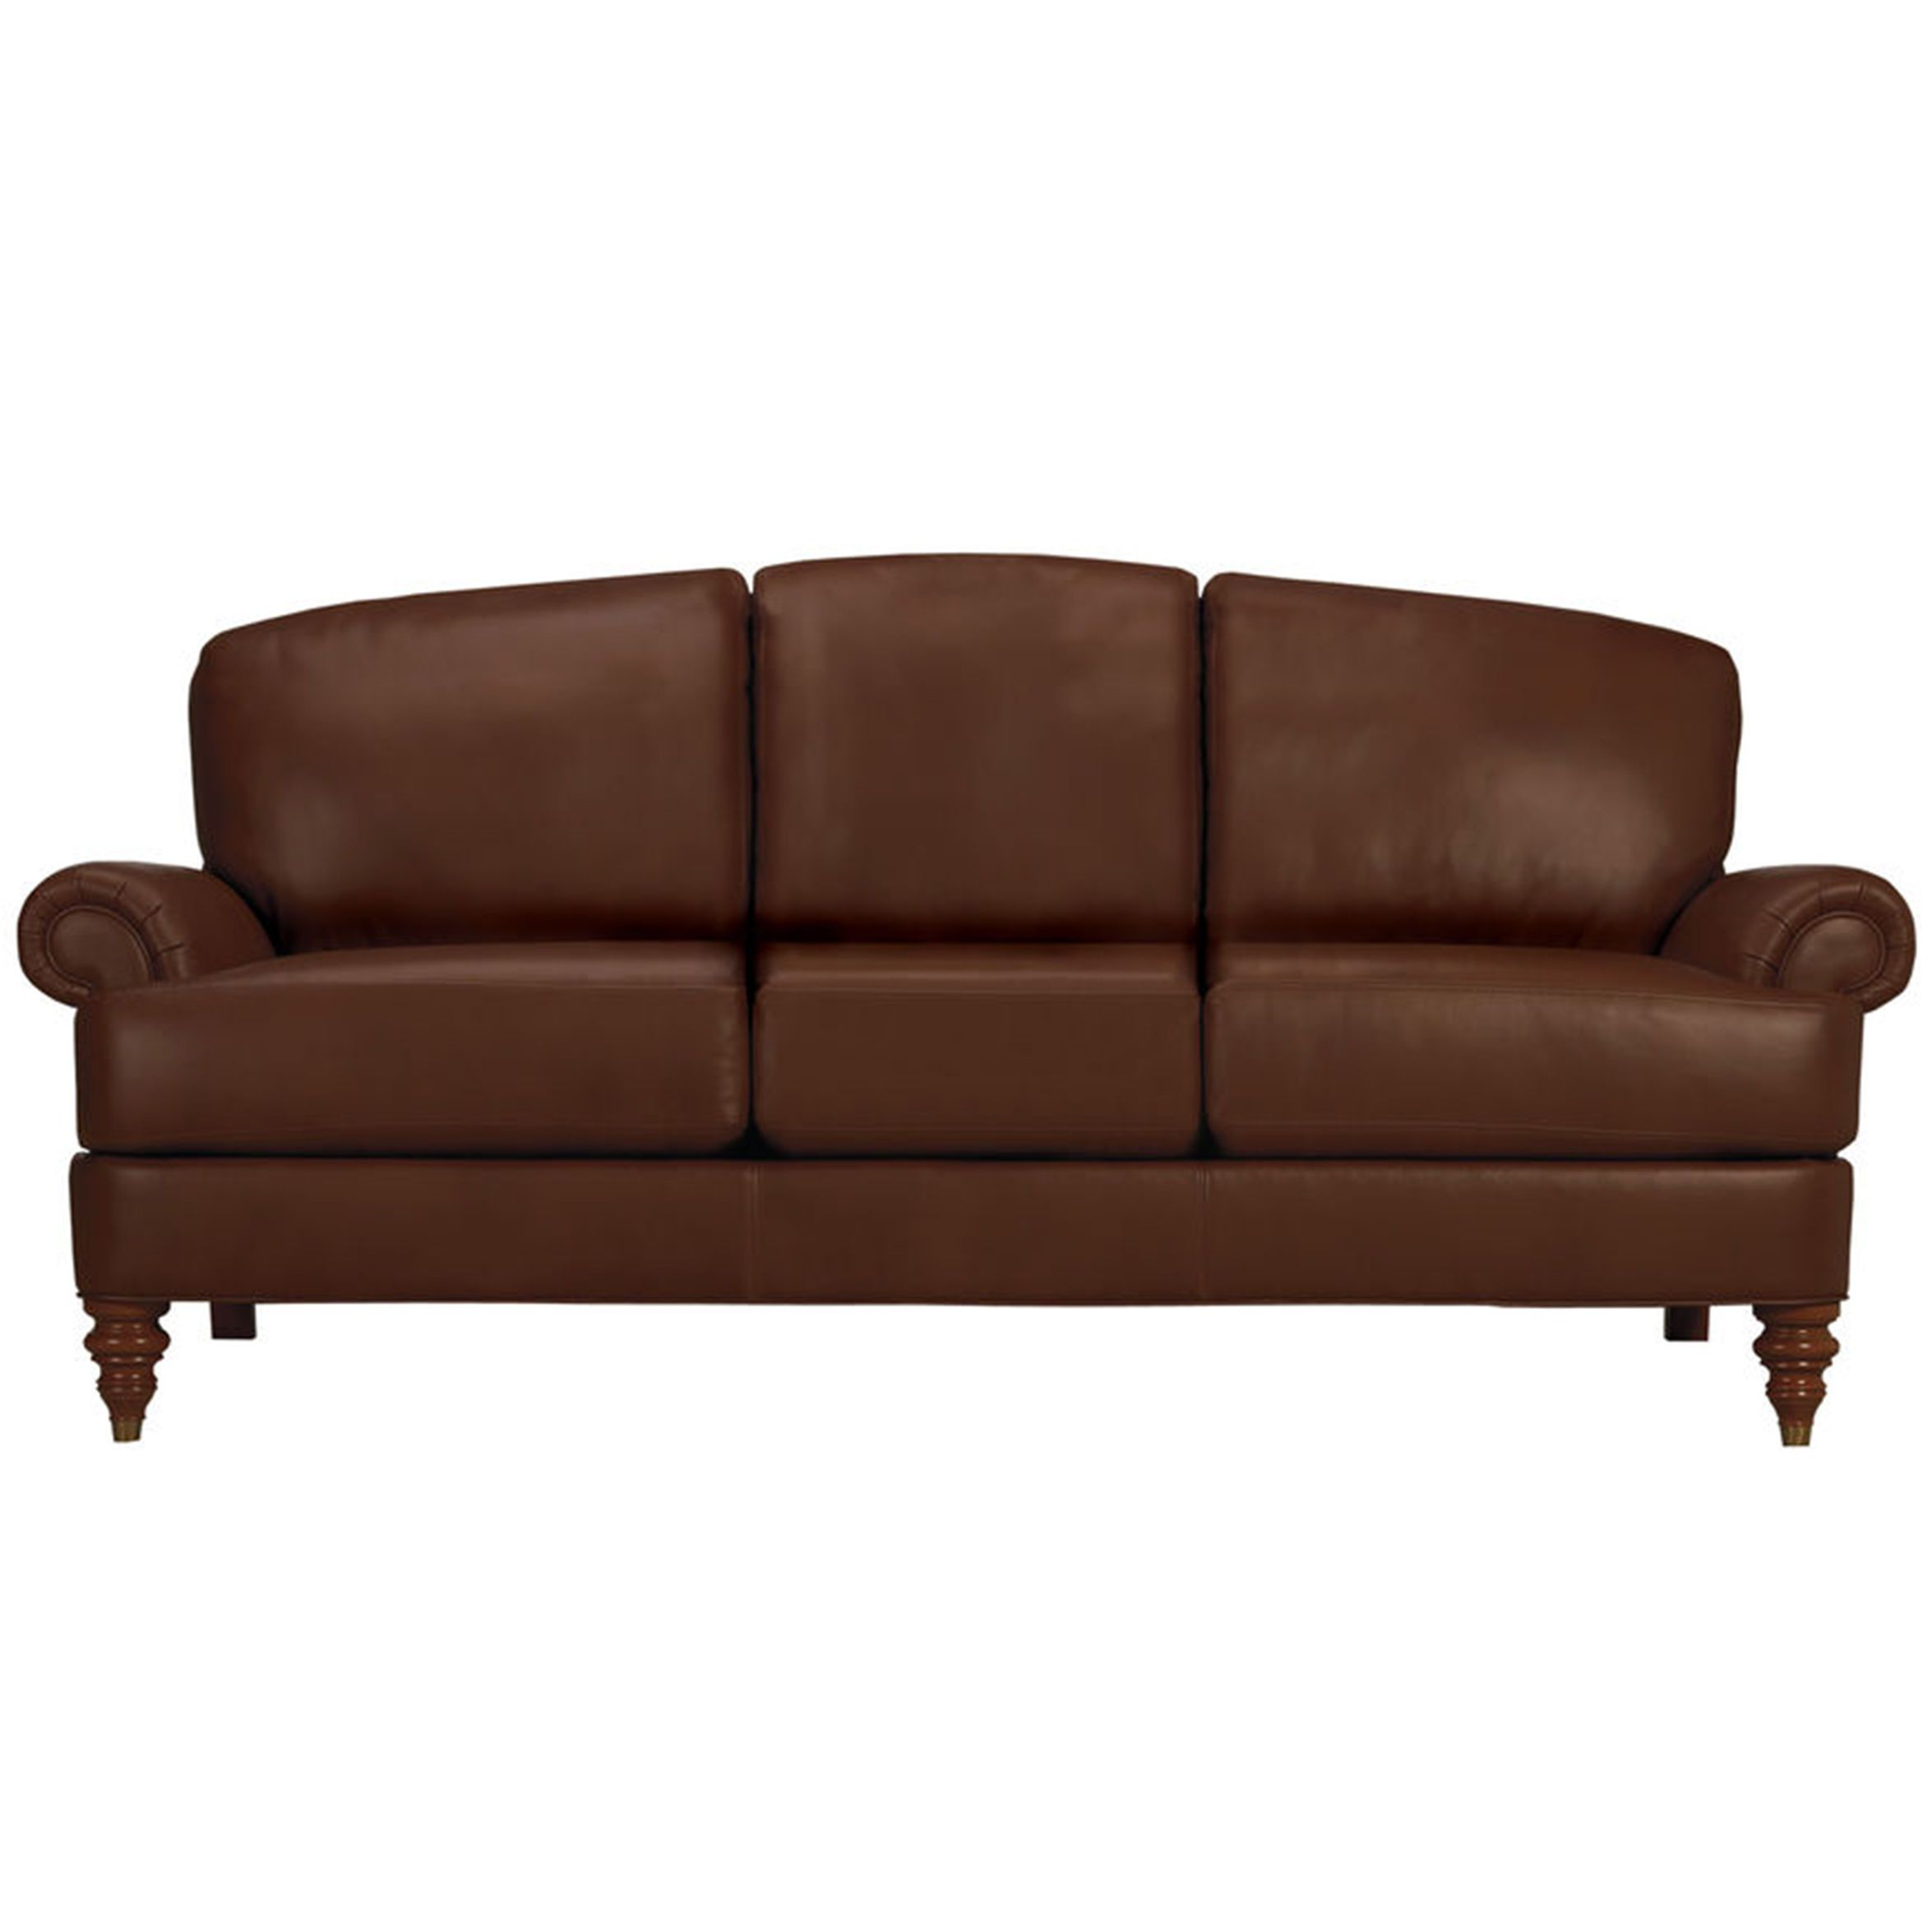 Hyde Three Cushion Leather Sofa Ethan Allen Us Furniture And